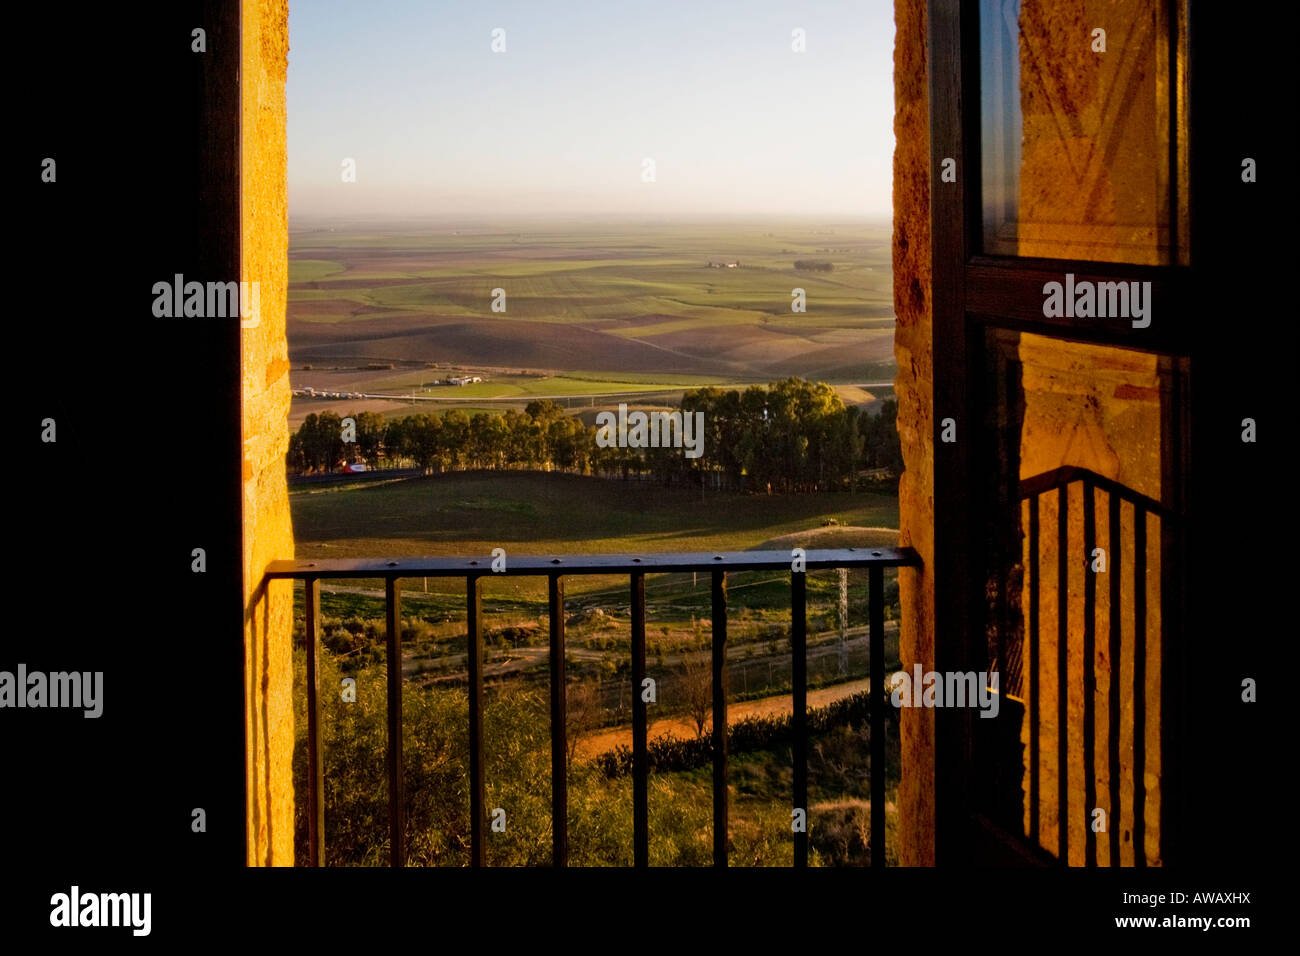 Agricultural land in the valley of Carmona Spain in the province of Seville is framed by a window - Stock Image